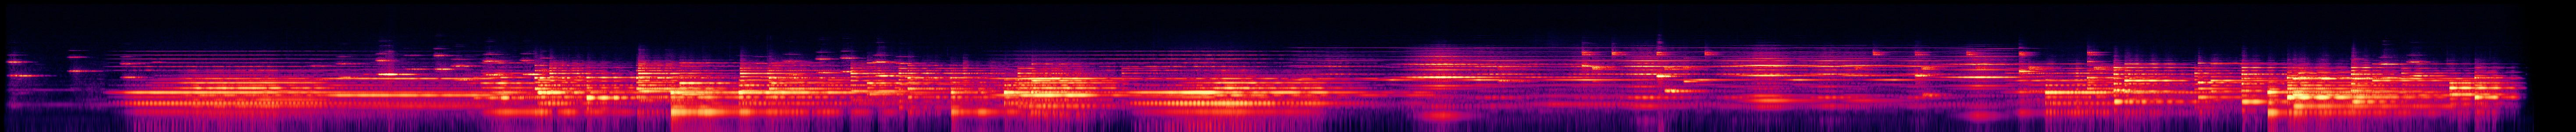 The Delian Mode - Spectrogram.jpg